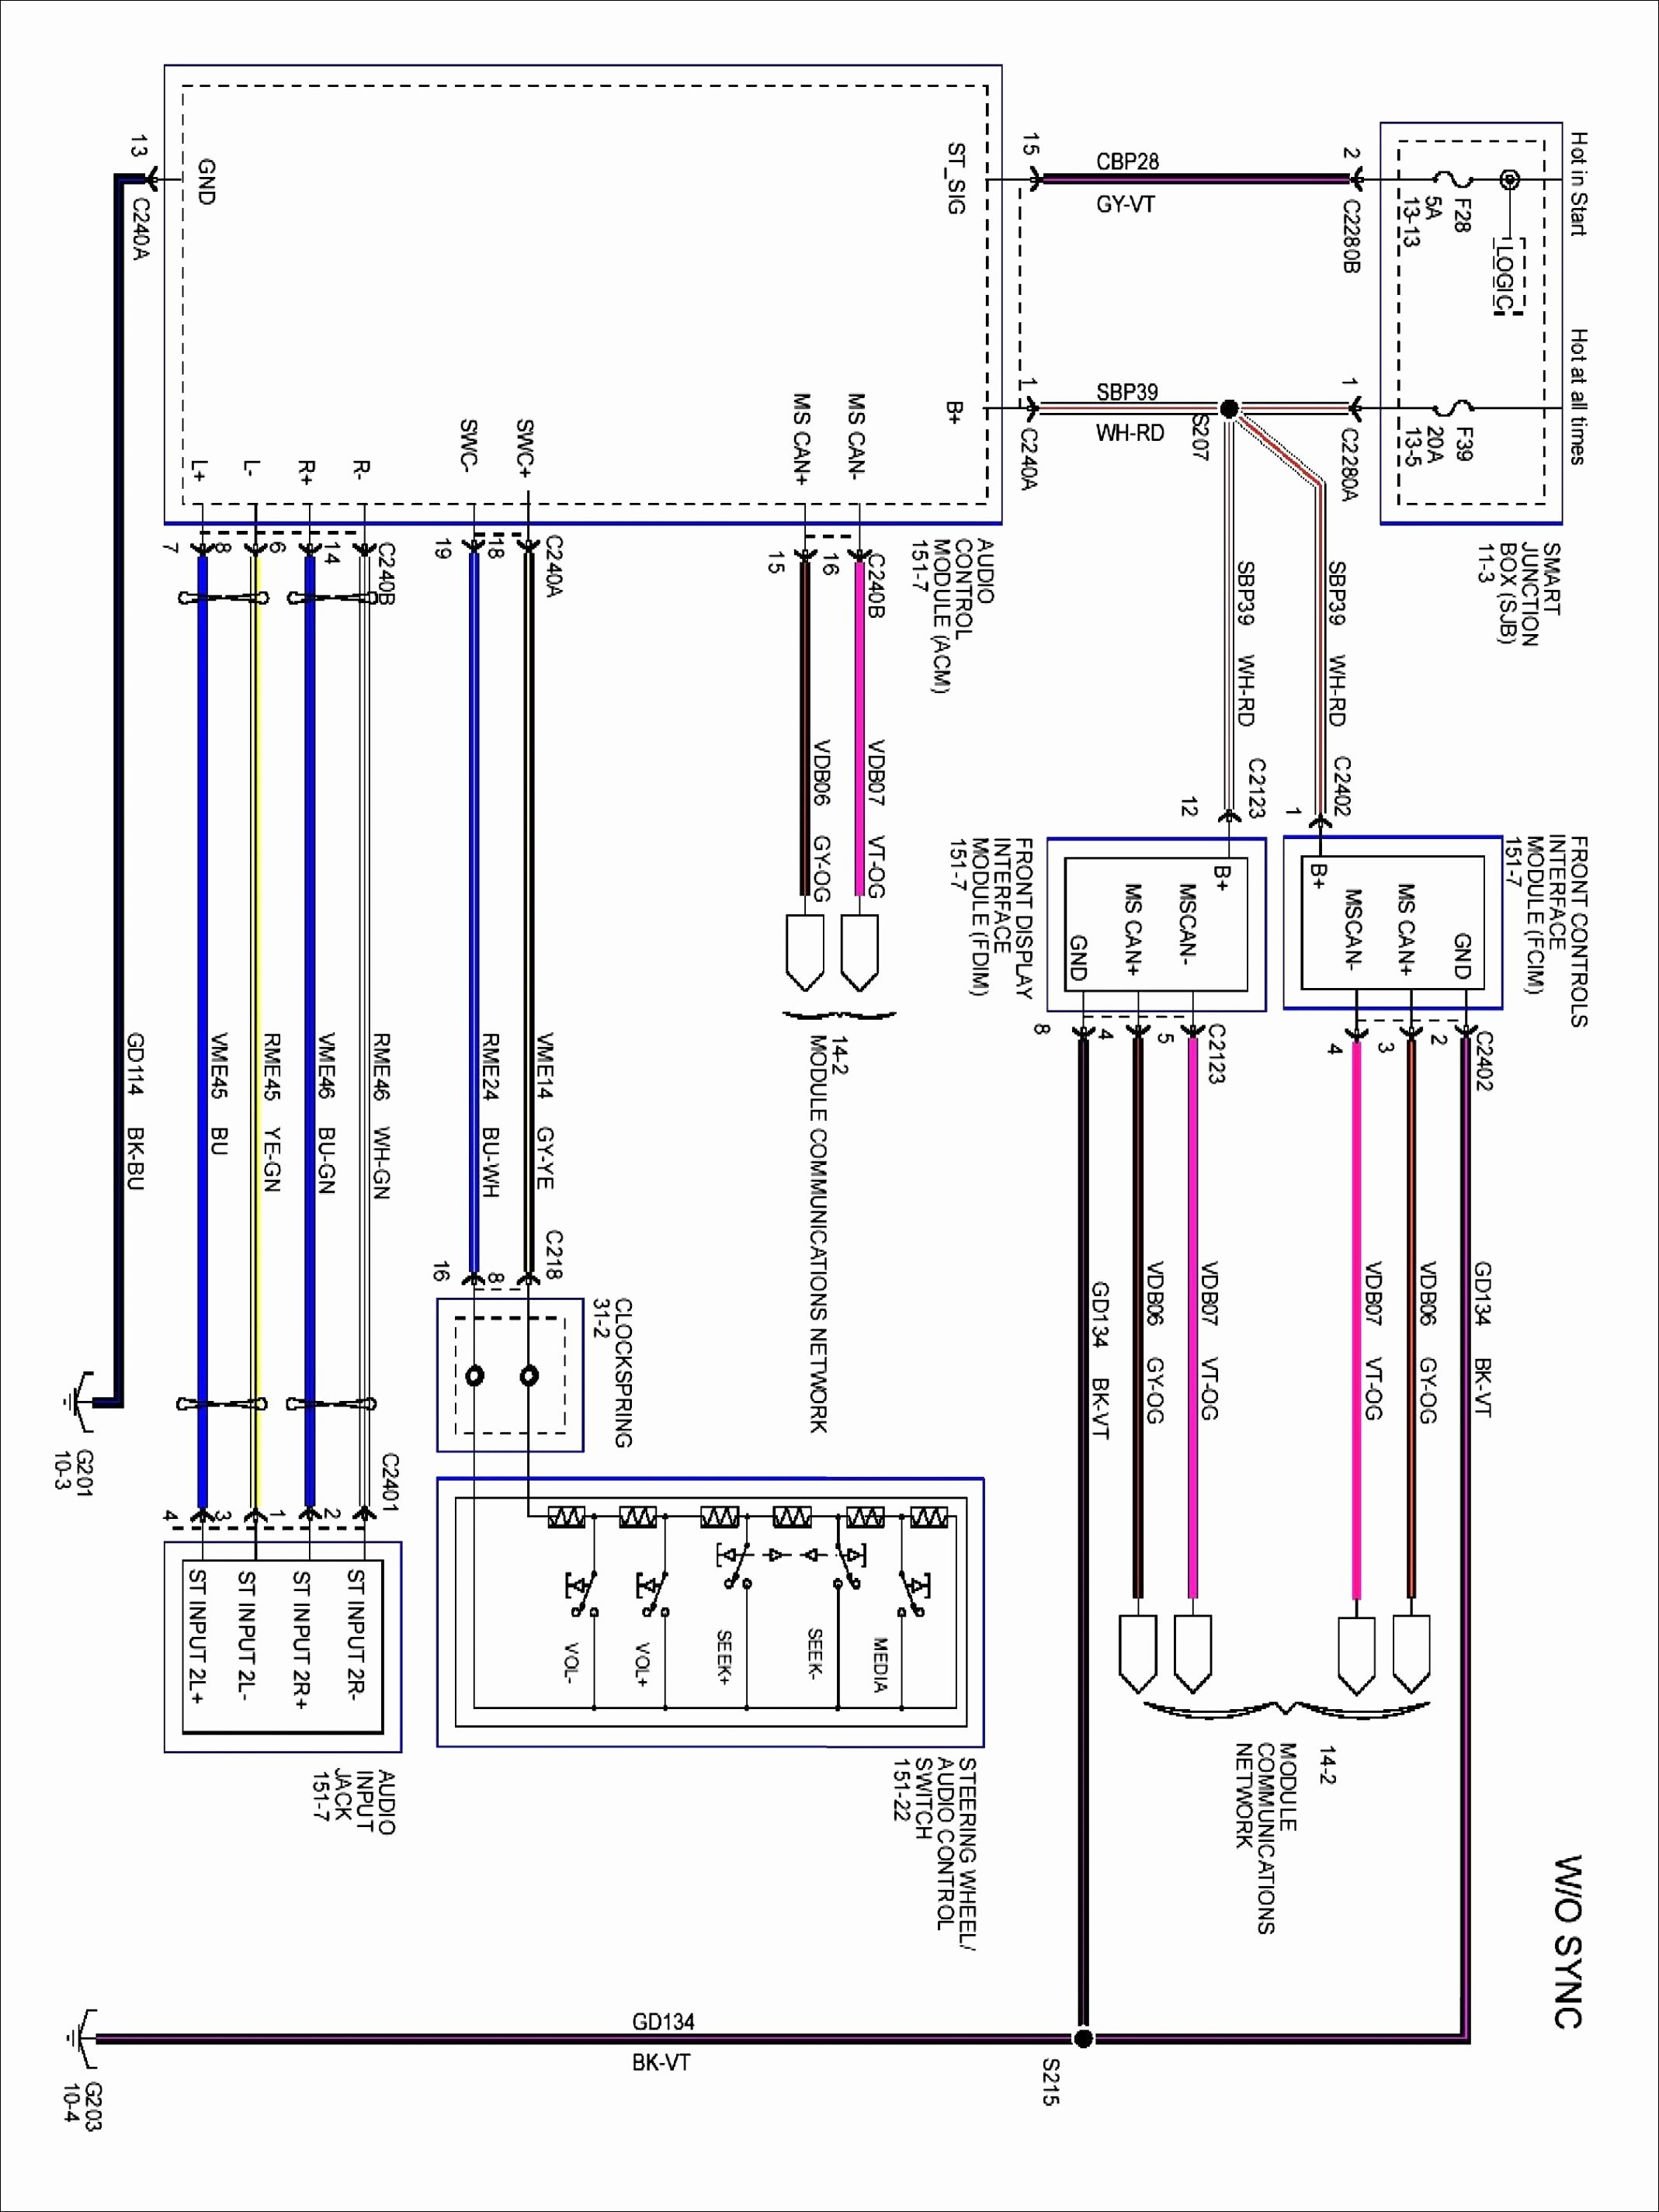 Transformer Circuit Diagram As Well Hydraulic Dump Trailer Pump - Dump Trailer Pump Wiring Diagram